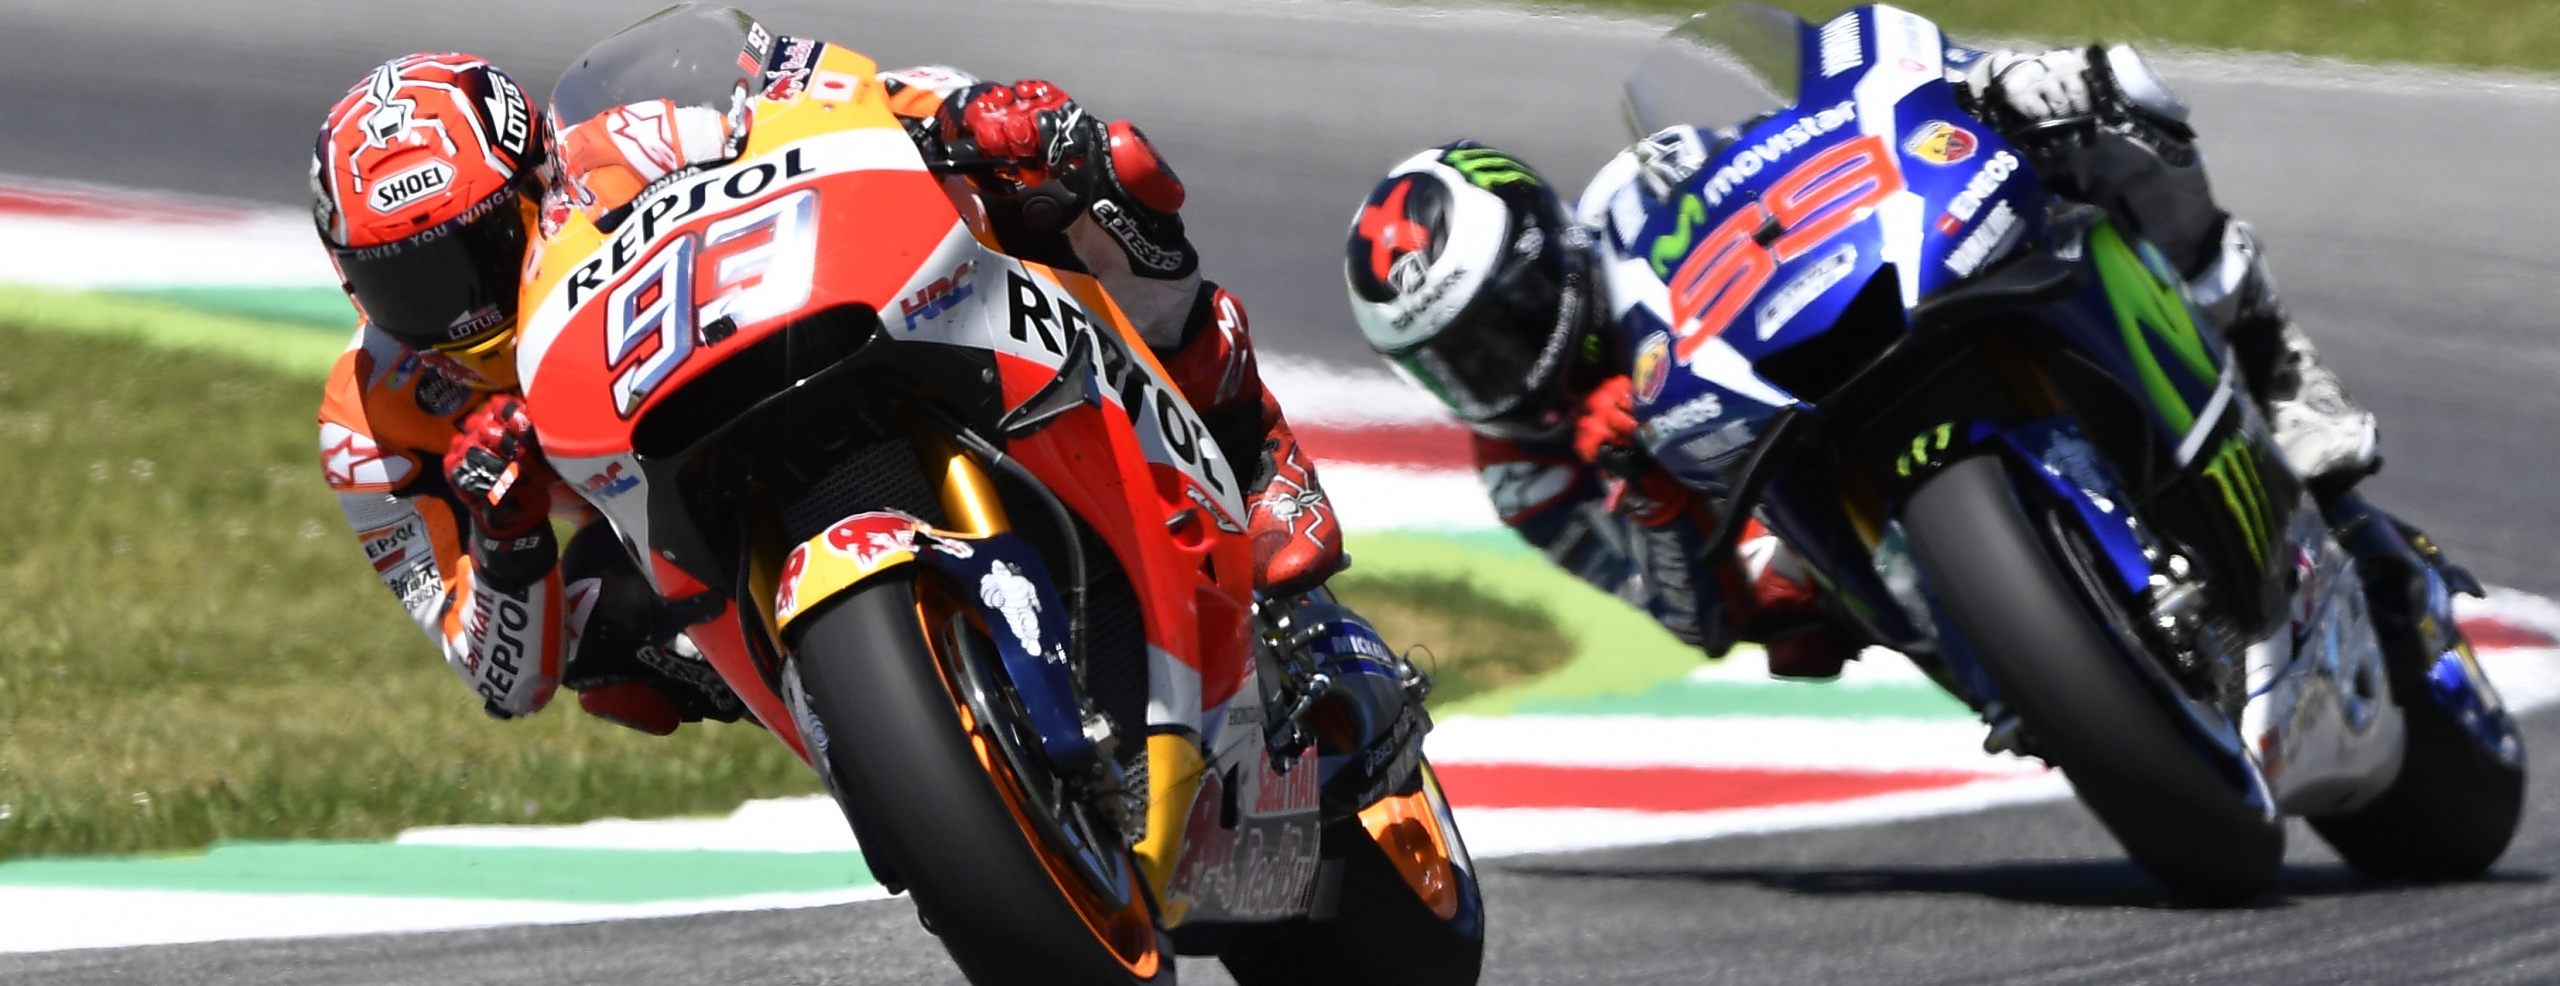 Magnificent second place for Marquez after intense battle with Lorenzo, Pedrosa just off the podium